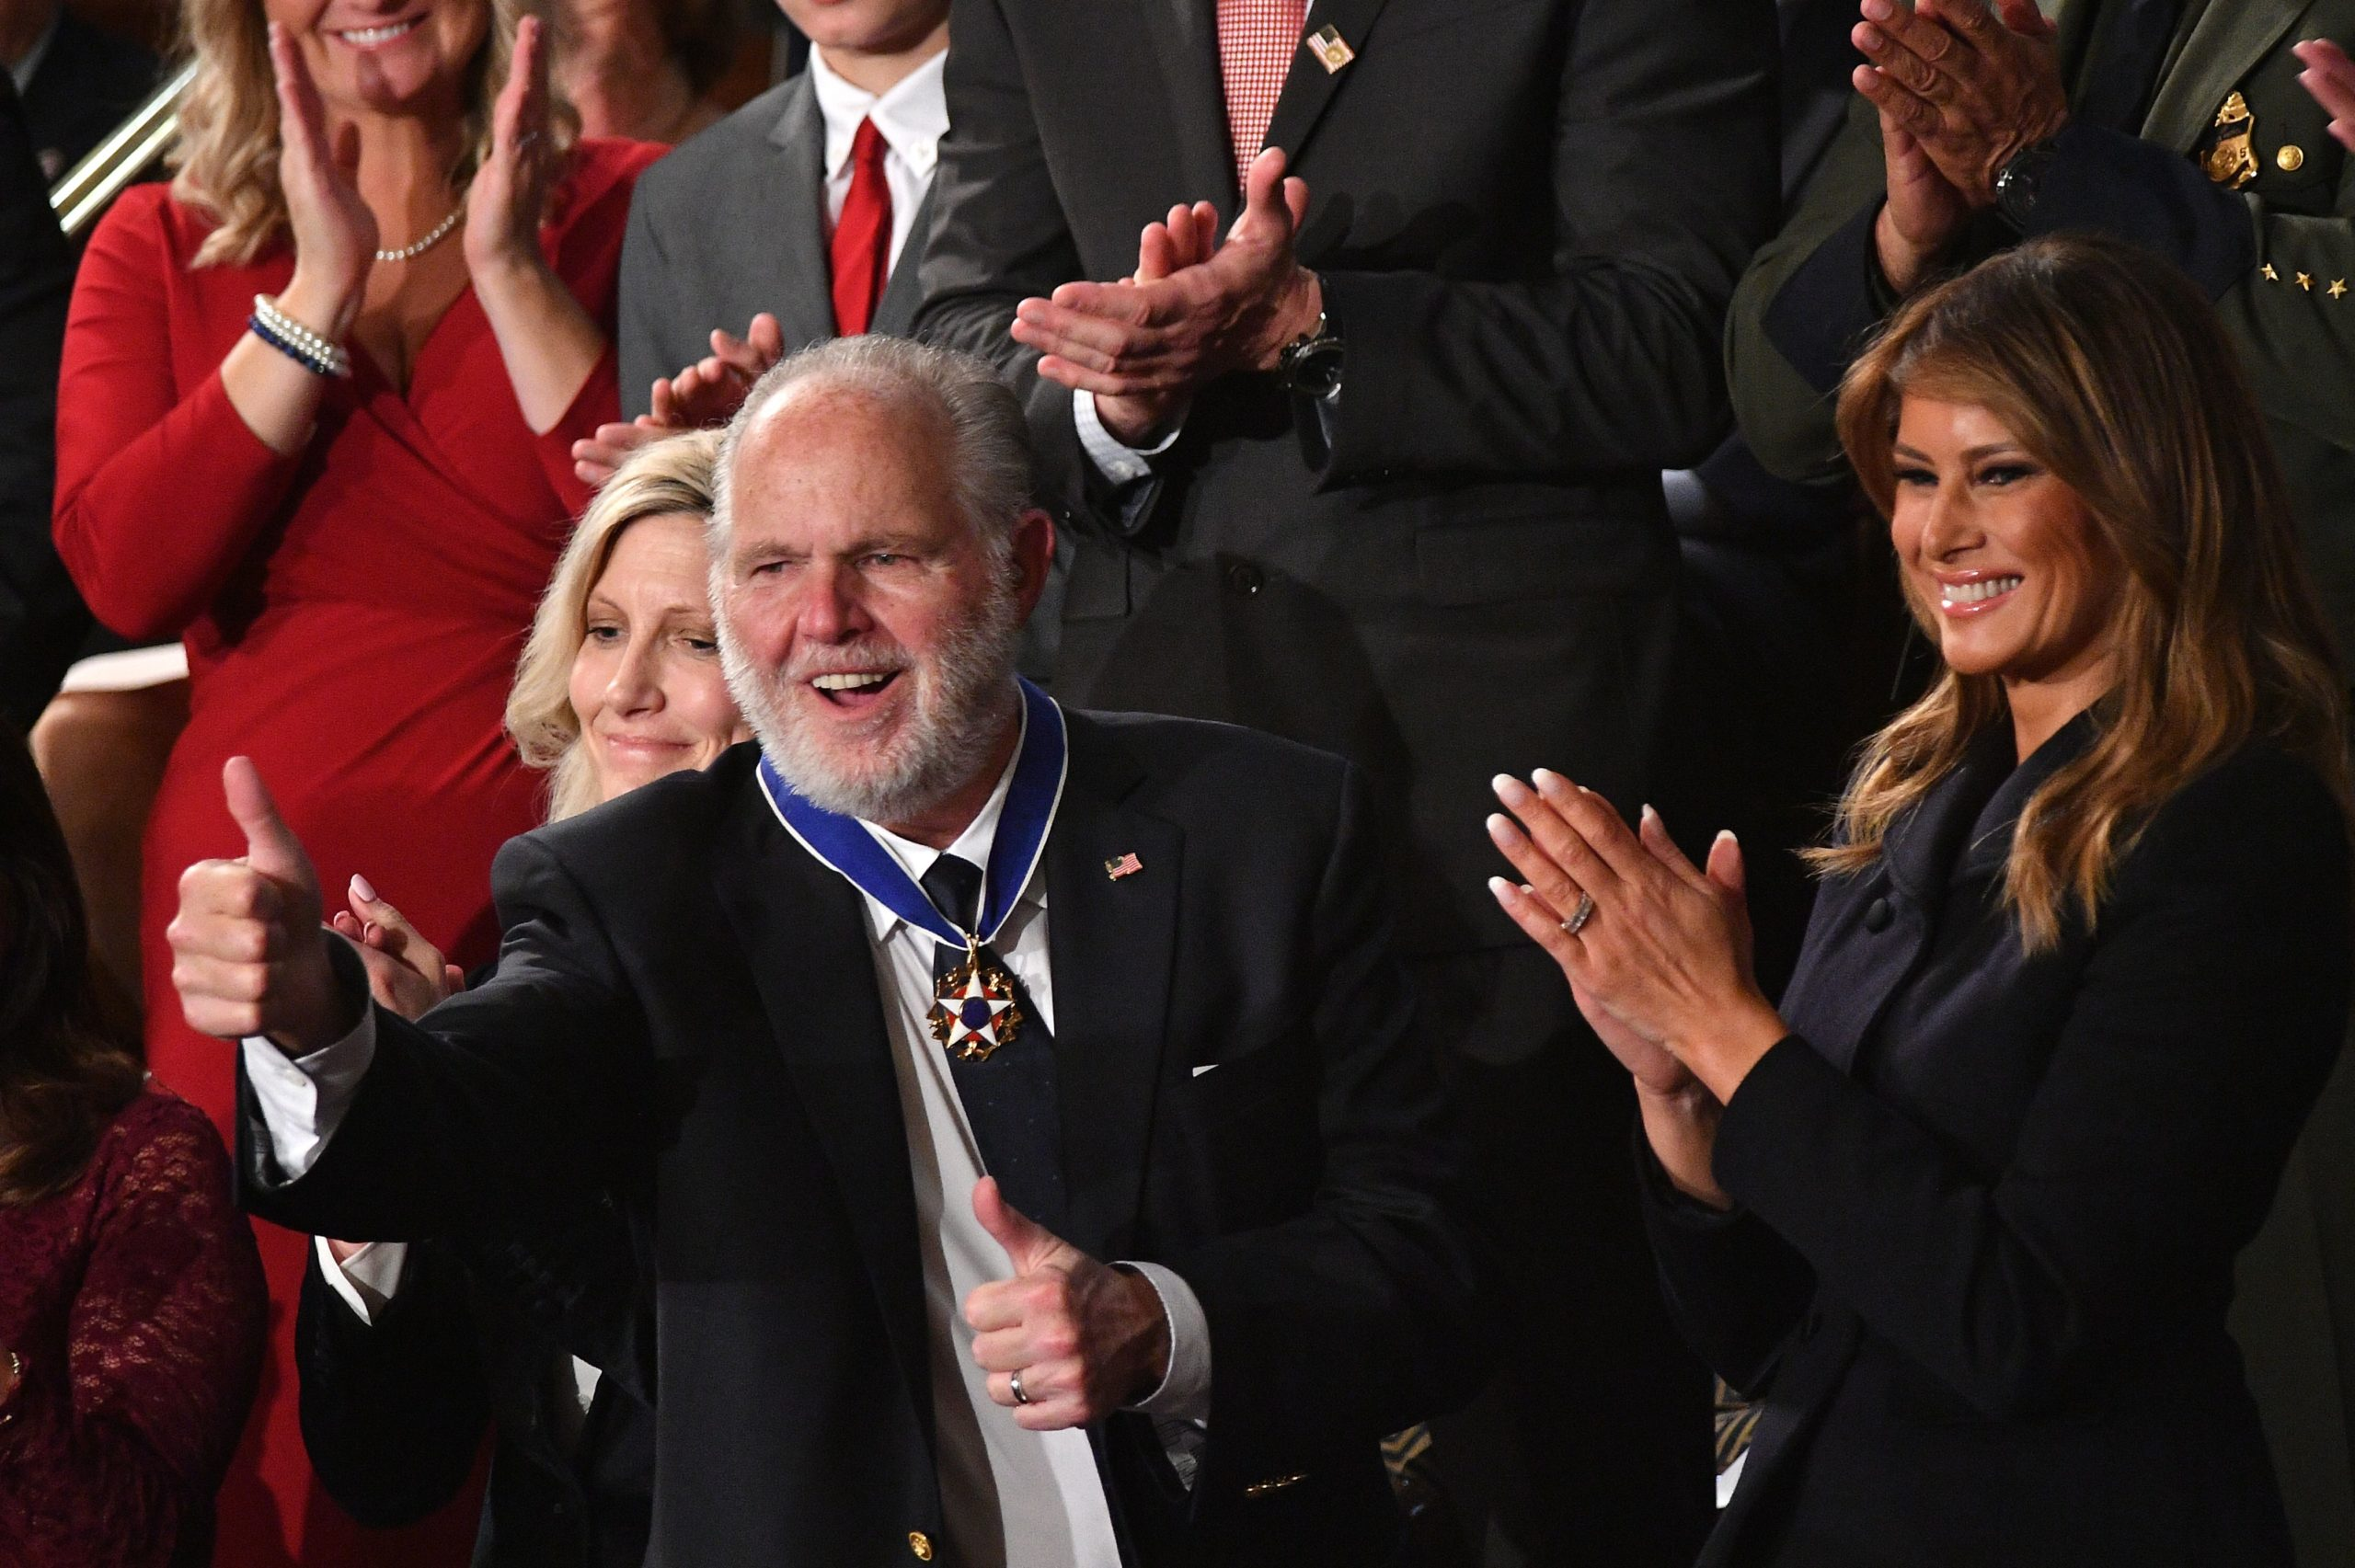 Radio personality Rush Limbaugh pumps thumb after being awarded the Medal of Freedom by First Lady Melania Trump after being acknowledged by US President Donald Trump as he delivers the State of the Union address at the US Capitol in Washington, DC, on February 4, 2020. (Photo by MANDEL NGAN / AFP) (Photo by MANDEL NGAN/AFP via Getty Images)